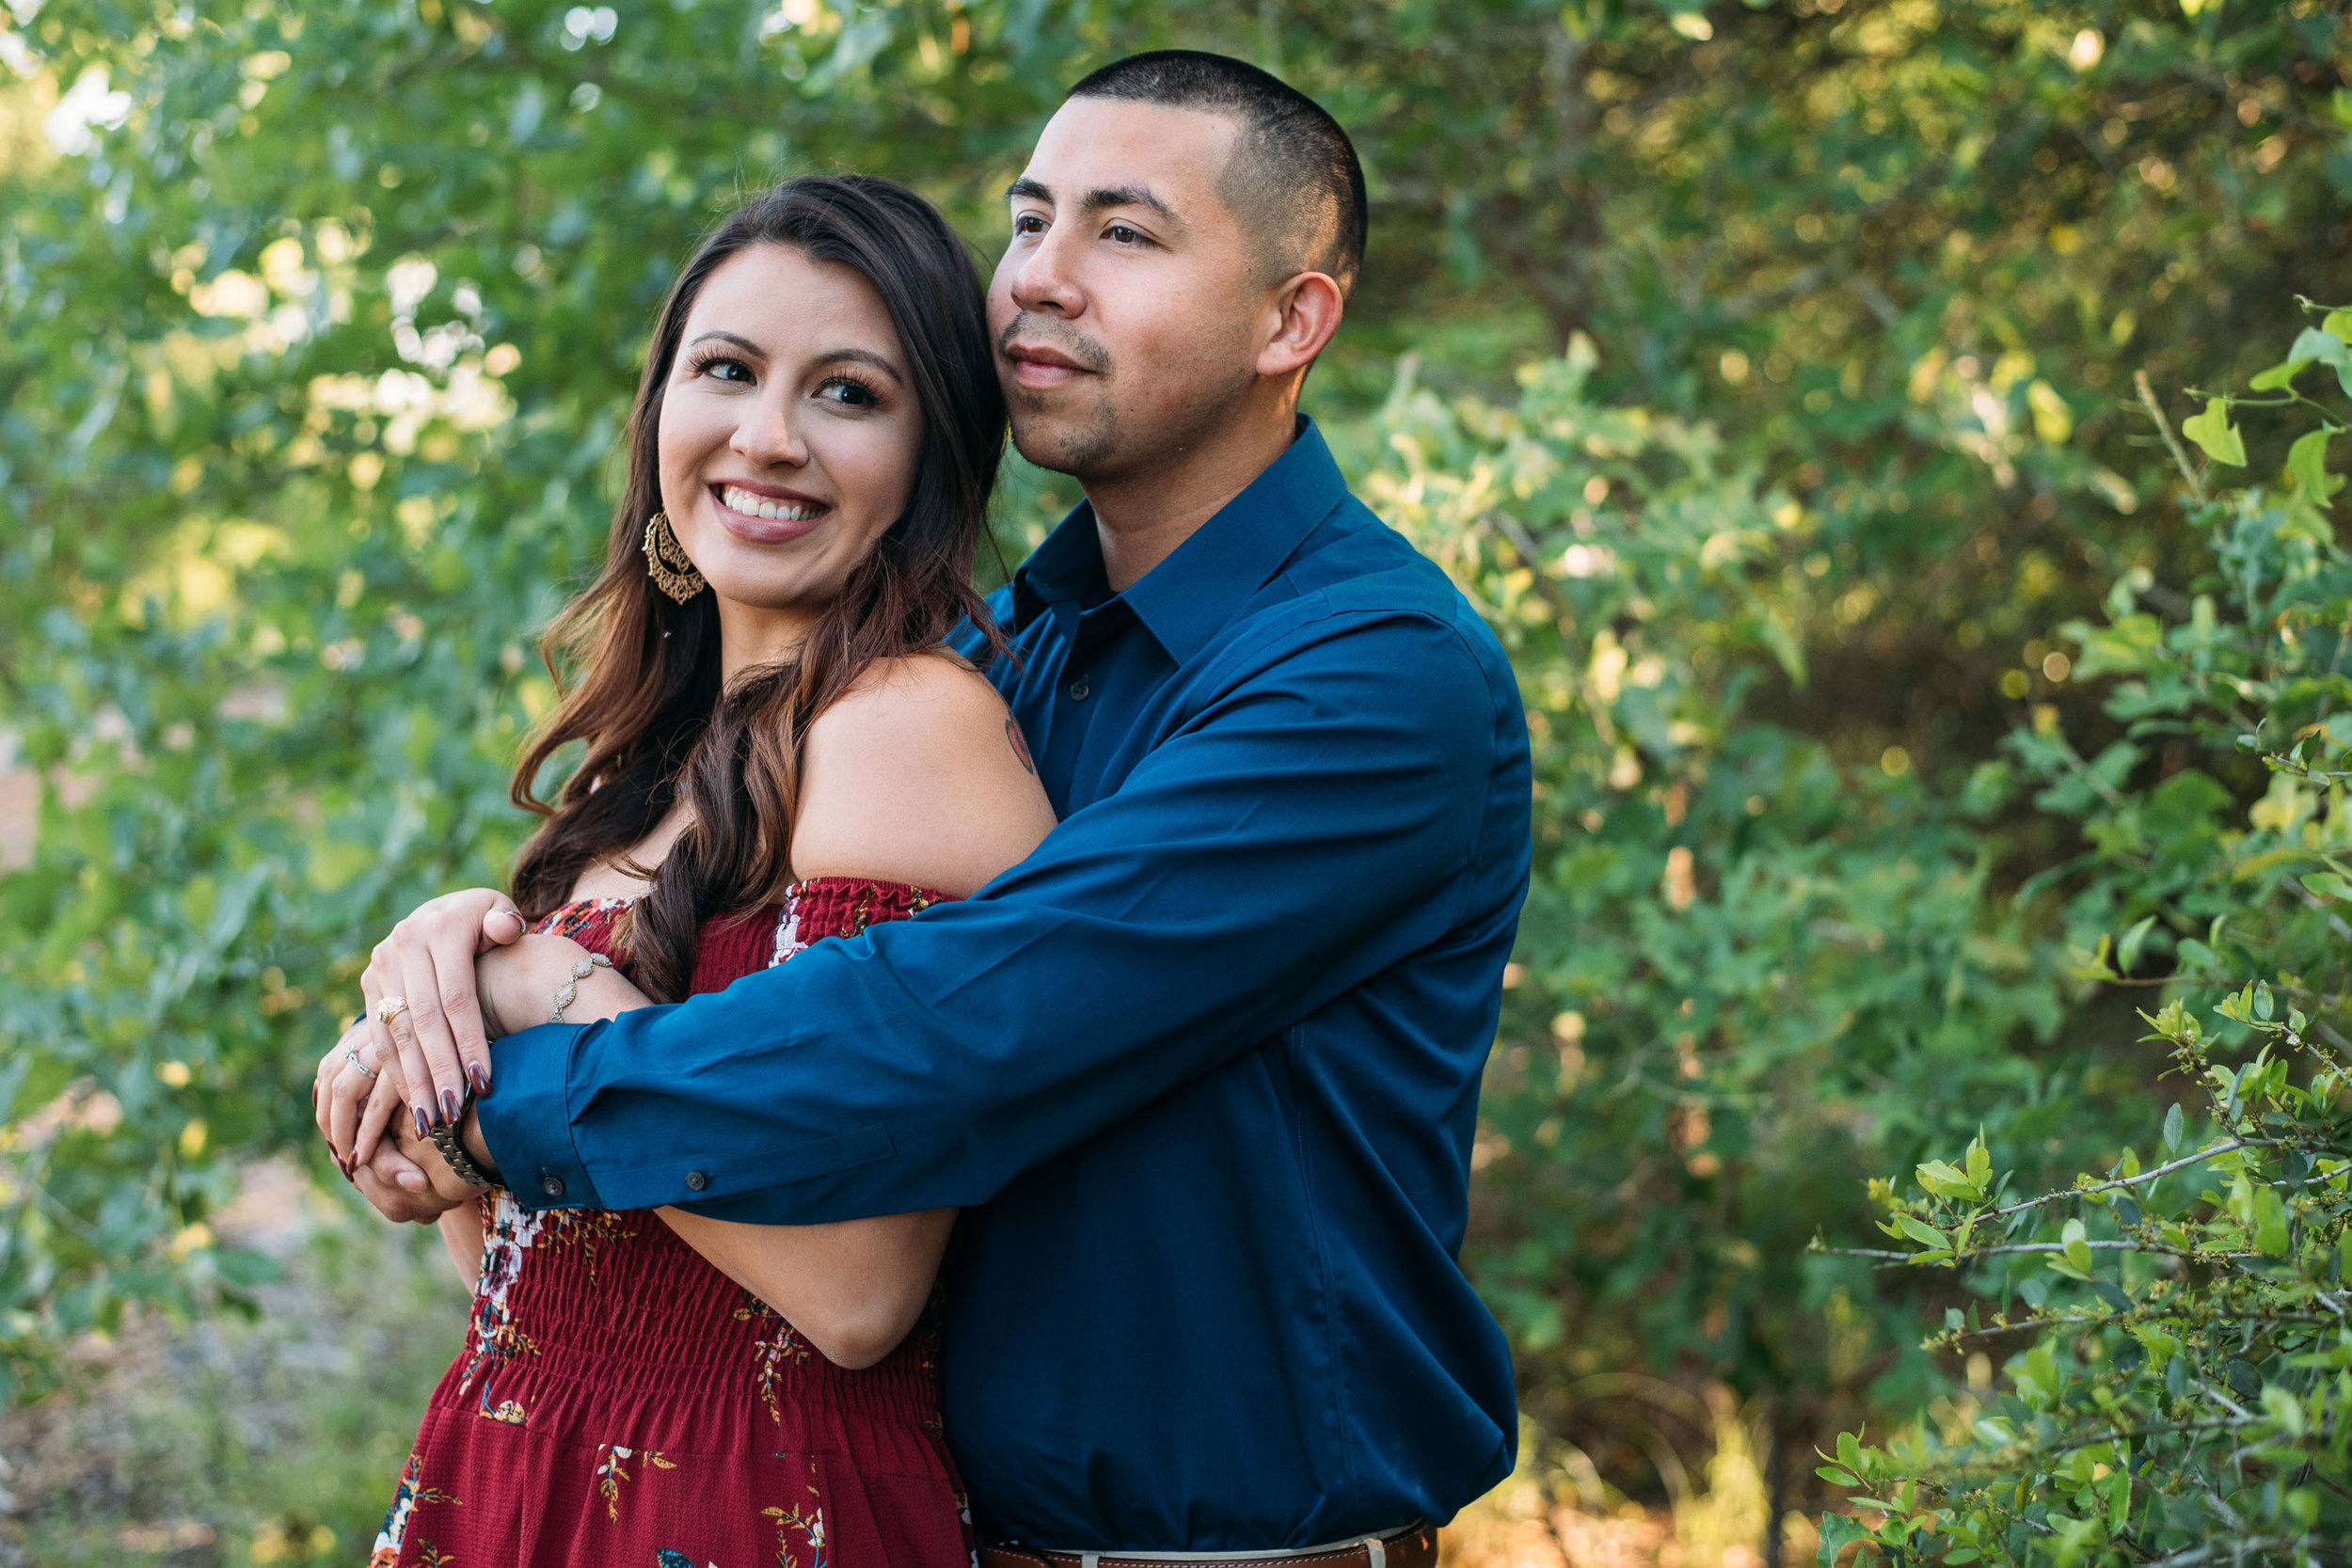 Aggie_Engagement_CollegeStation_LickCreekPark_02.jpg